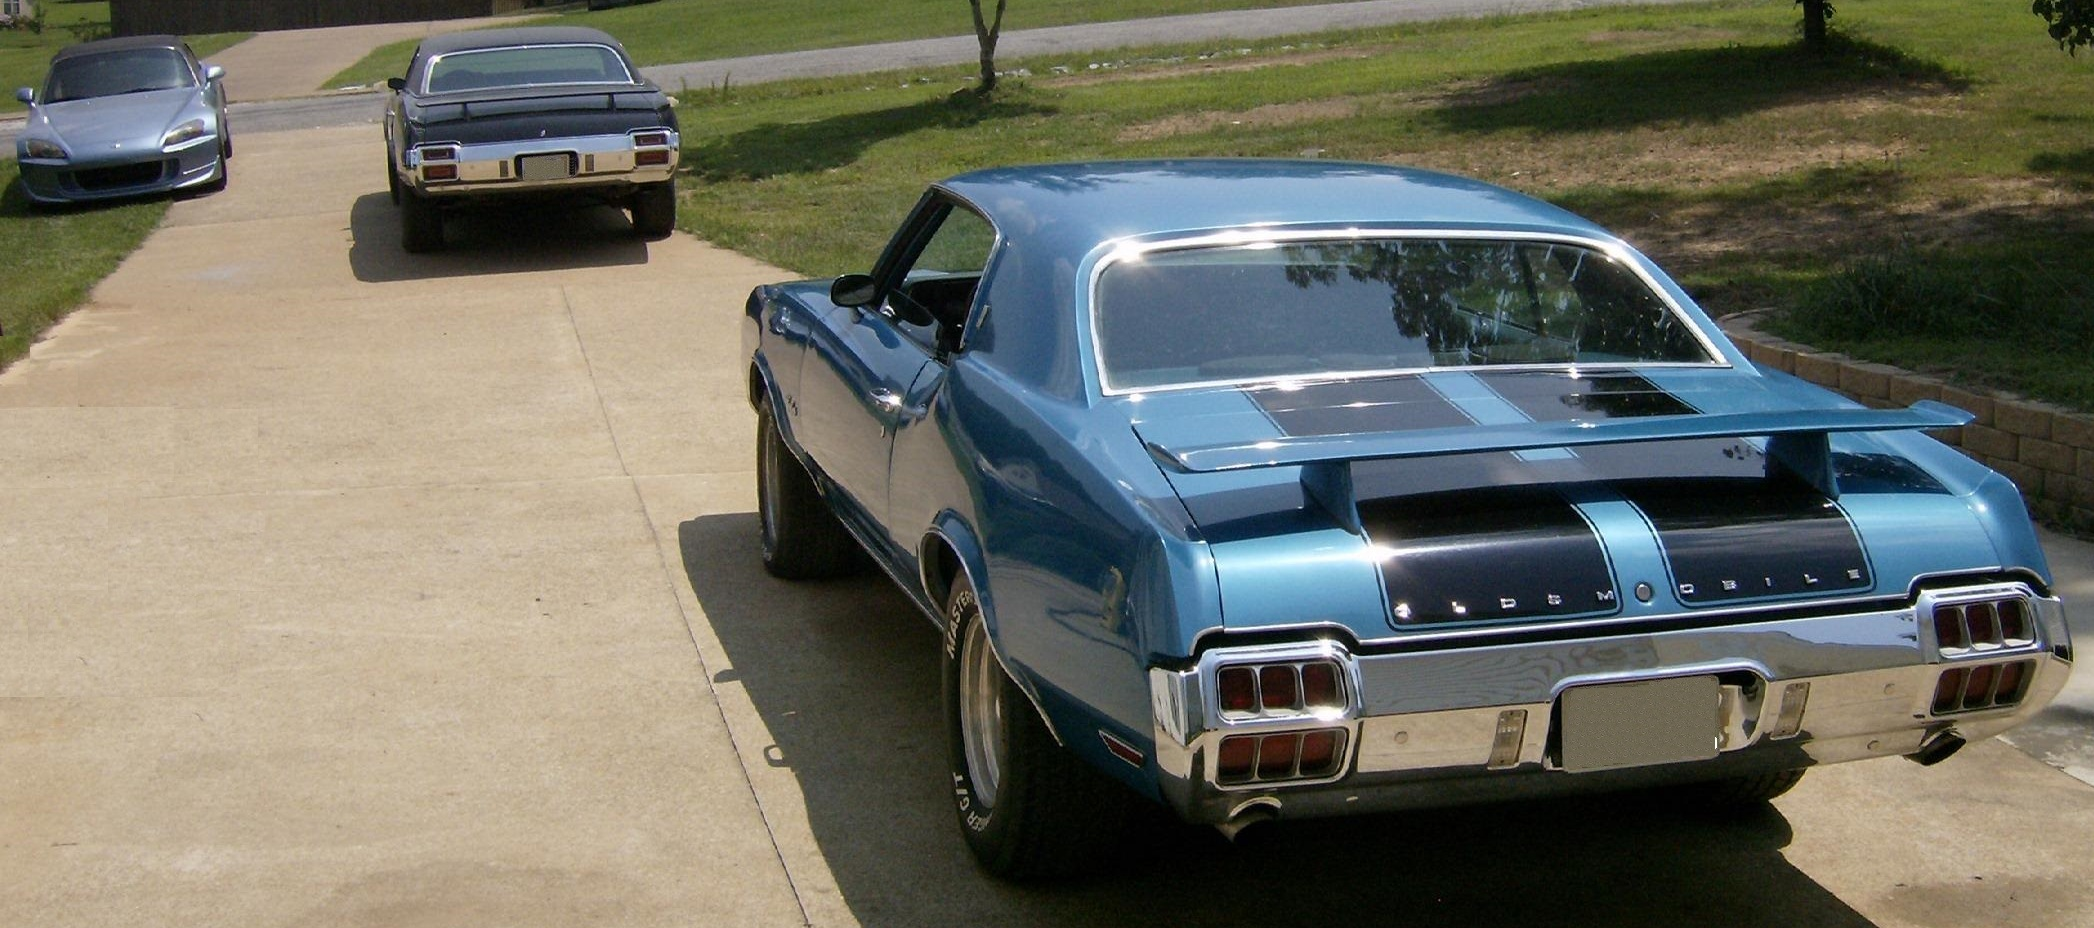 Click image for larger version  Name:My Blue 72 Cutlass (16).JPG Views:92 Size:531.5 KB ID:151972